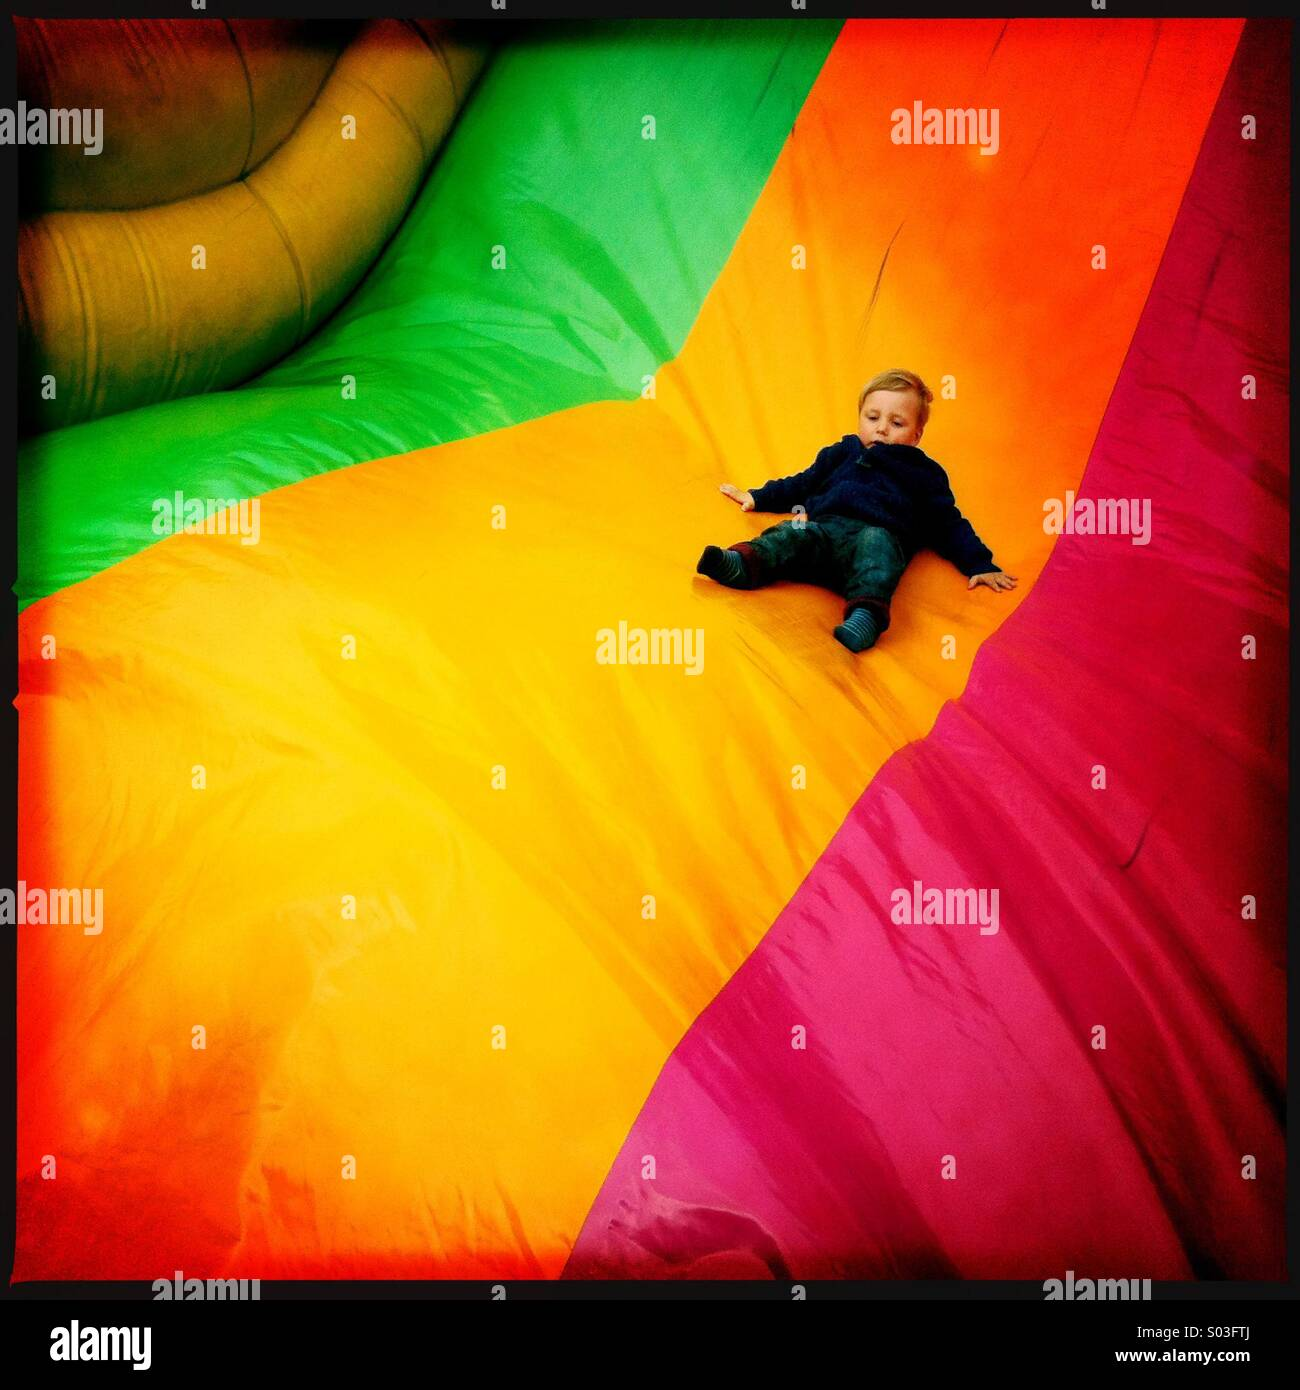 A two year old boy sliding down a large inflatable slide at a fun fair - Stock Image